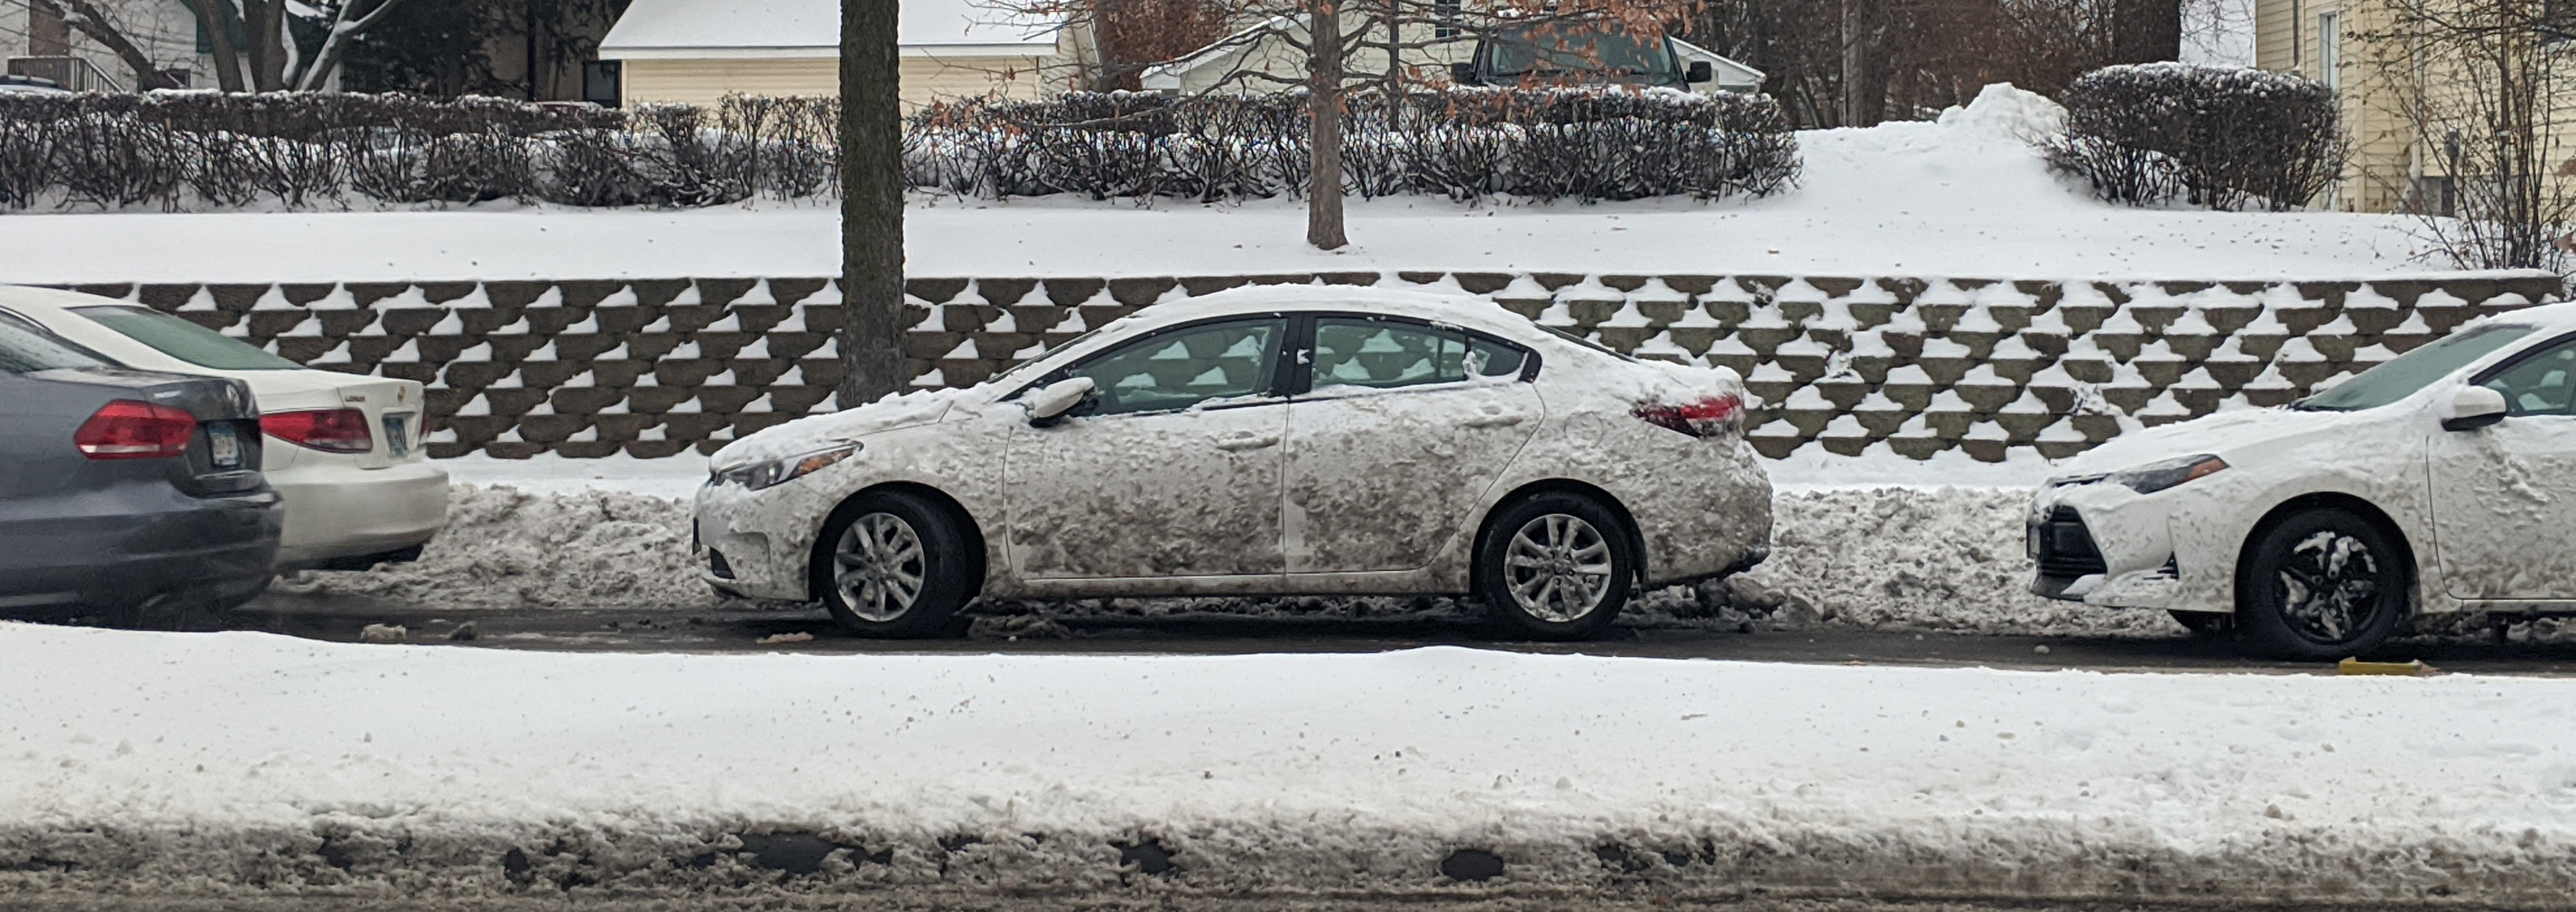 A once-white car, covered in snow and muck.